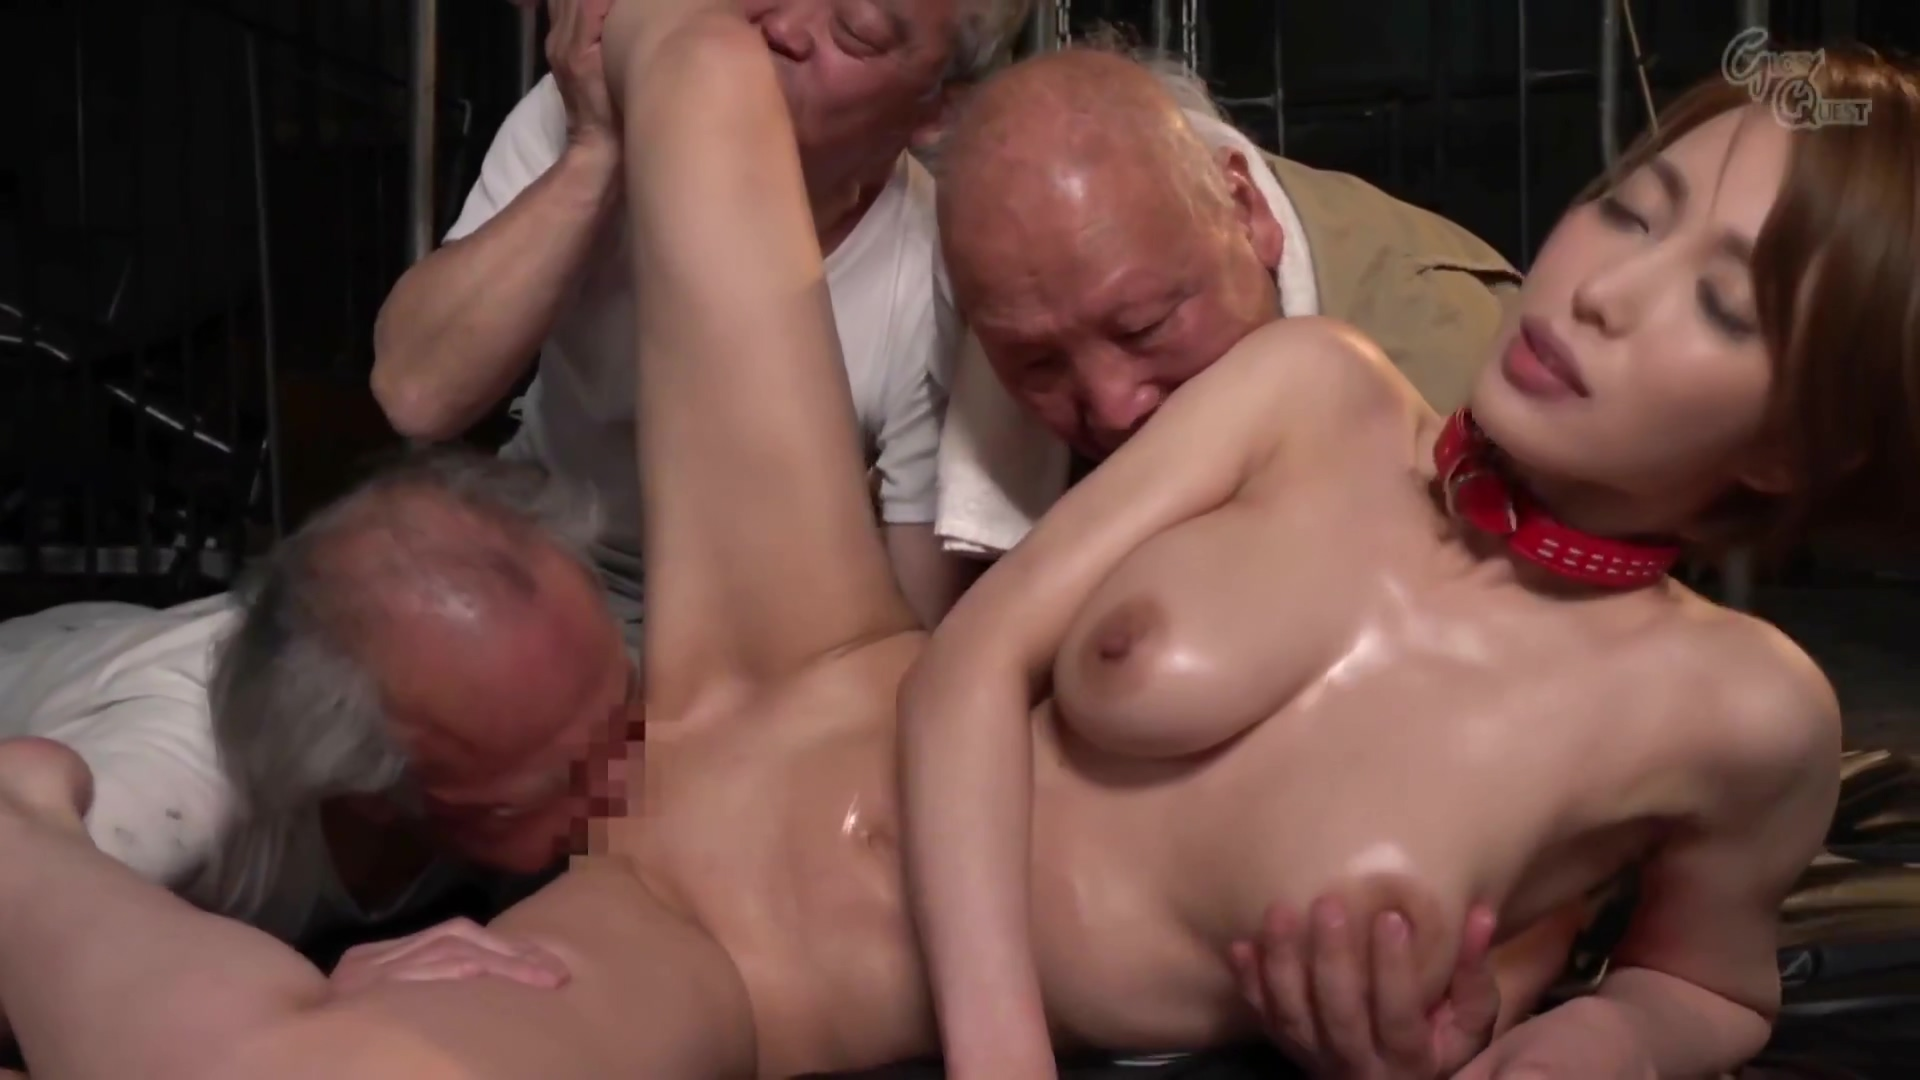 [lt19] Gvg-713 Big Tits Widow Gangbanged By Old Man And Become Sexual Slave Kimishima Mio